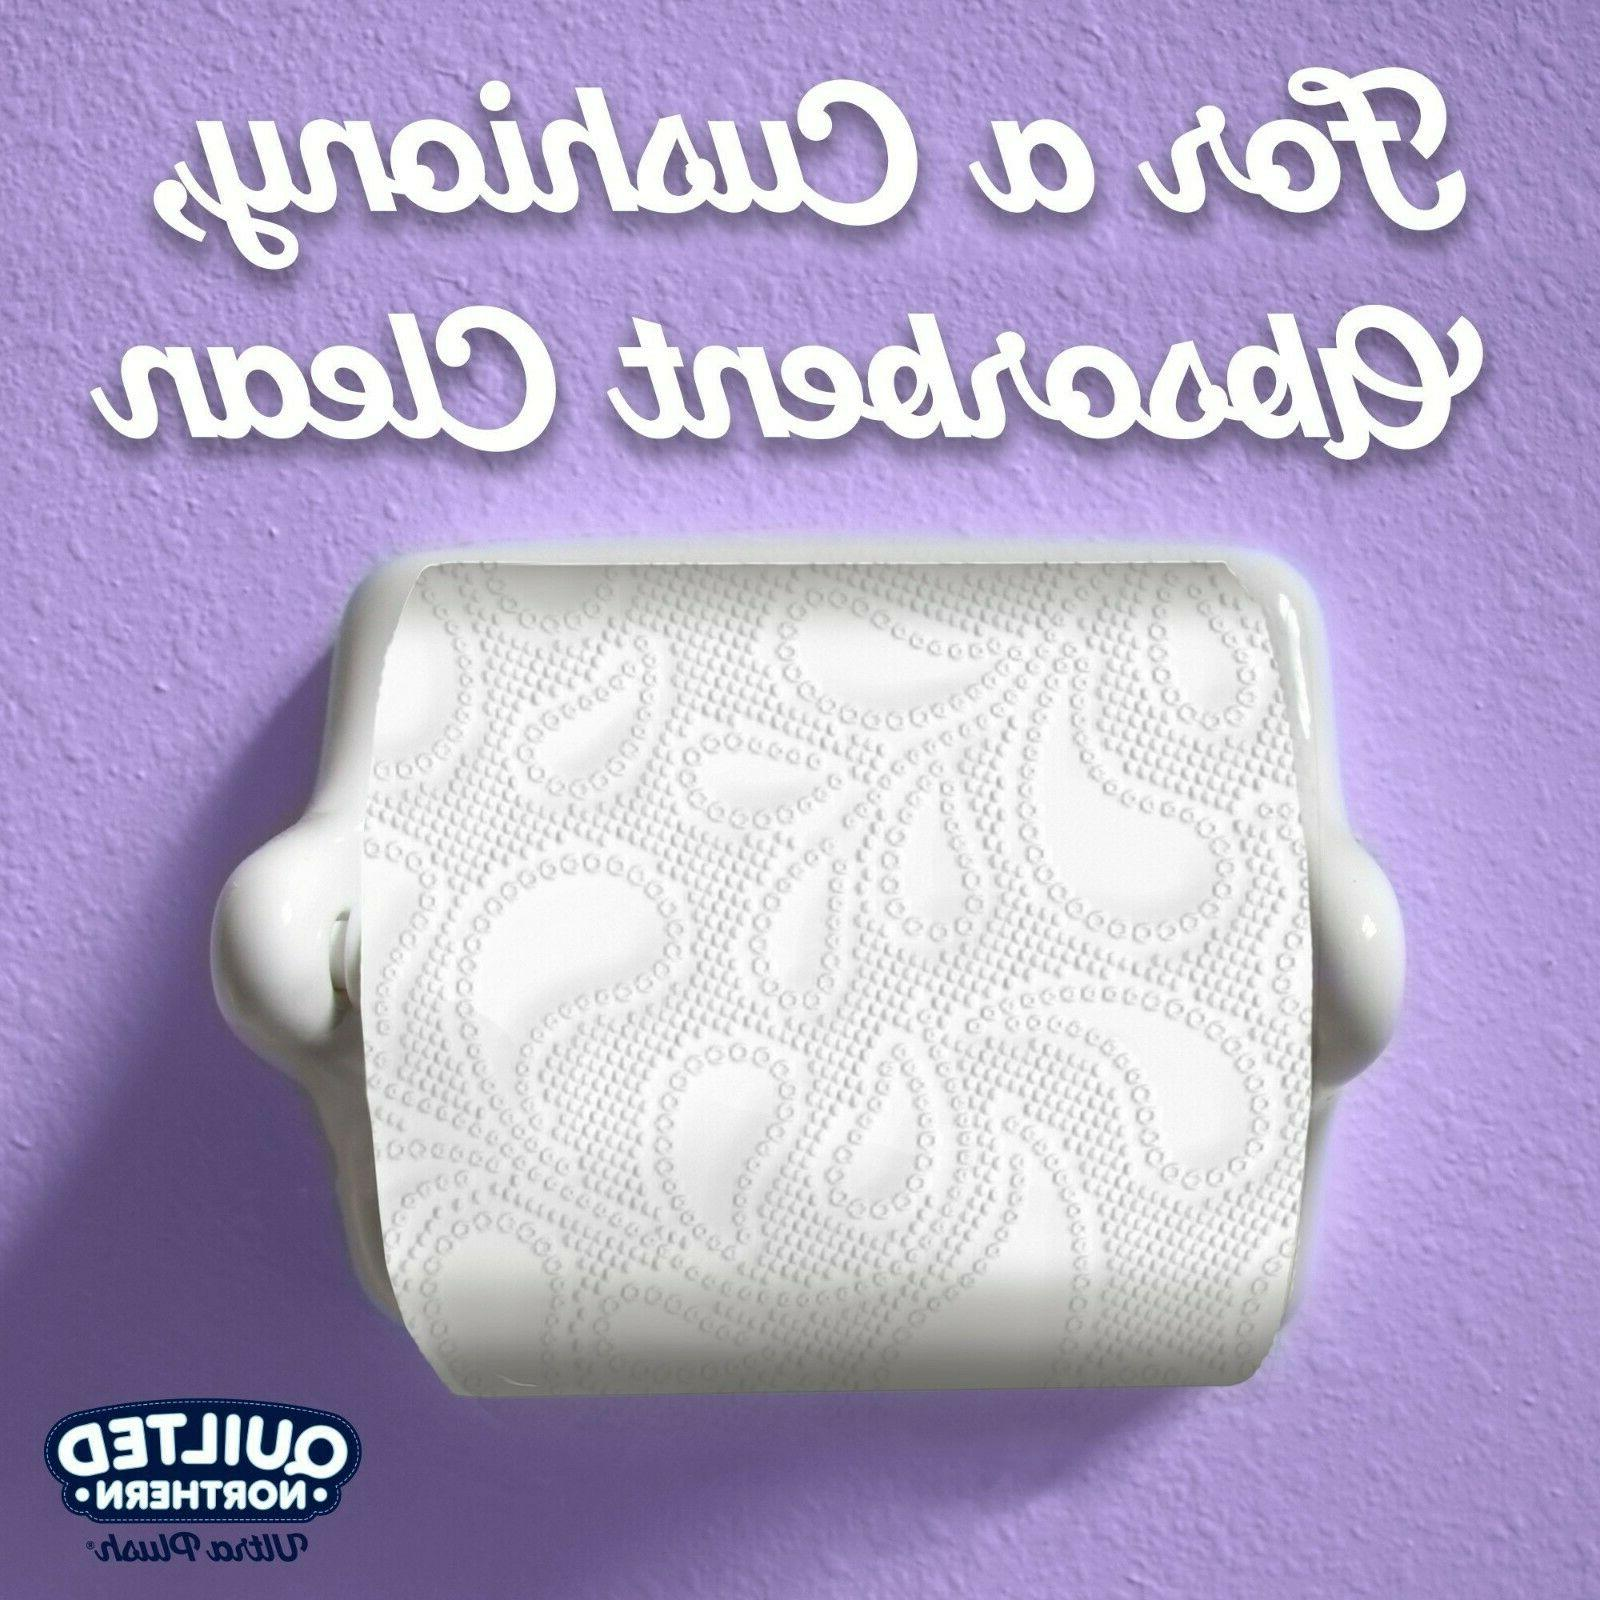 Quilted Northern Ultra Toilet Ply Bath Tissue, of 8 Rolls